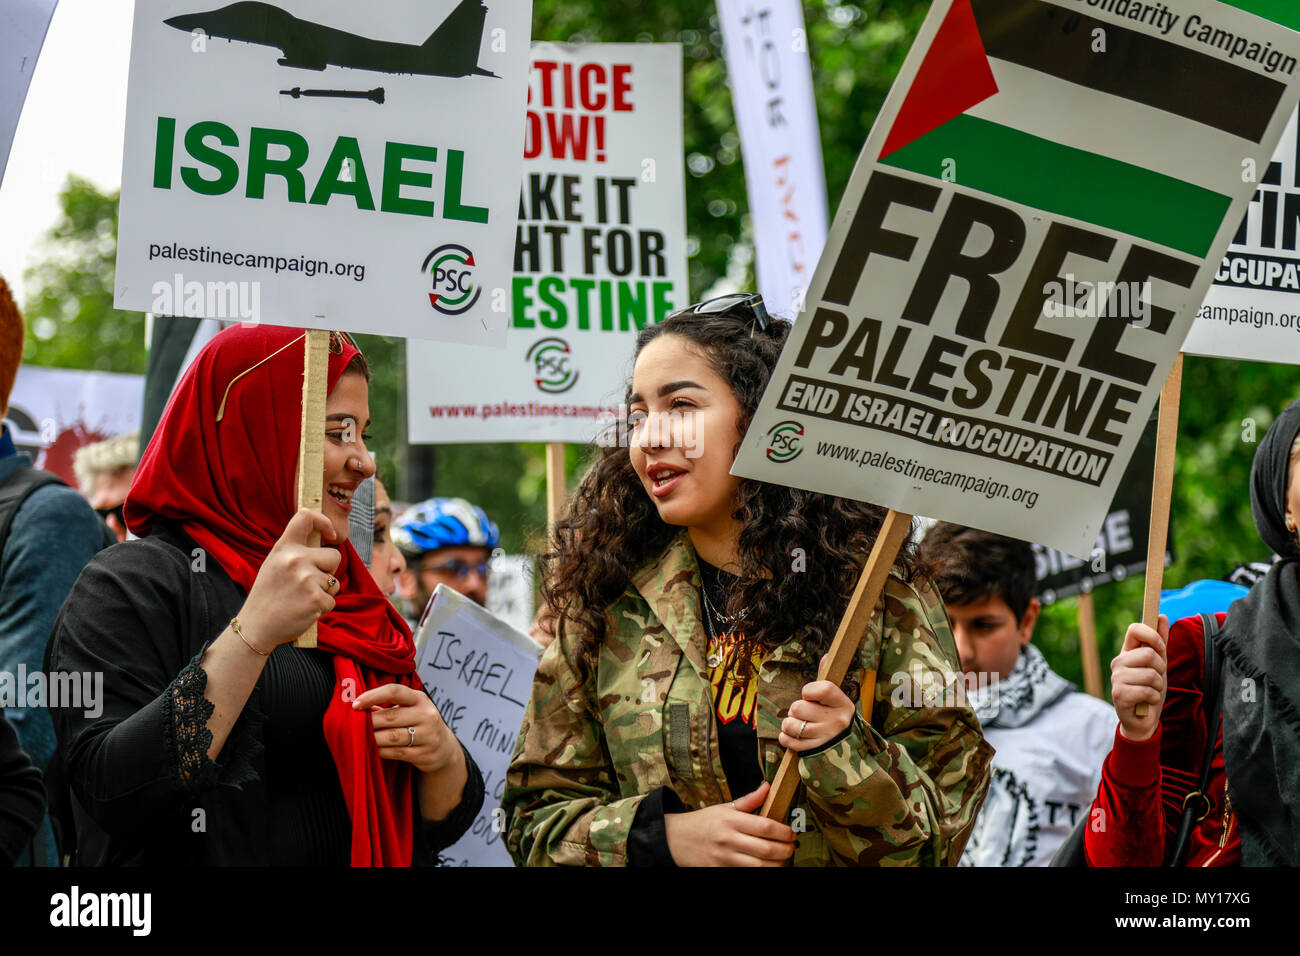 London, England. 5th June, 2018. Palestinian Solidarity Campaign Protest, London Protest: Free Palestine – Stop the Killing – Stop Arming Israel. Credit: Brian Duffy/Alamy Live News - Stock Image